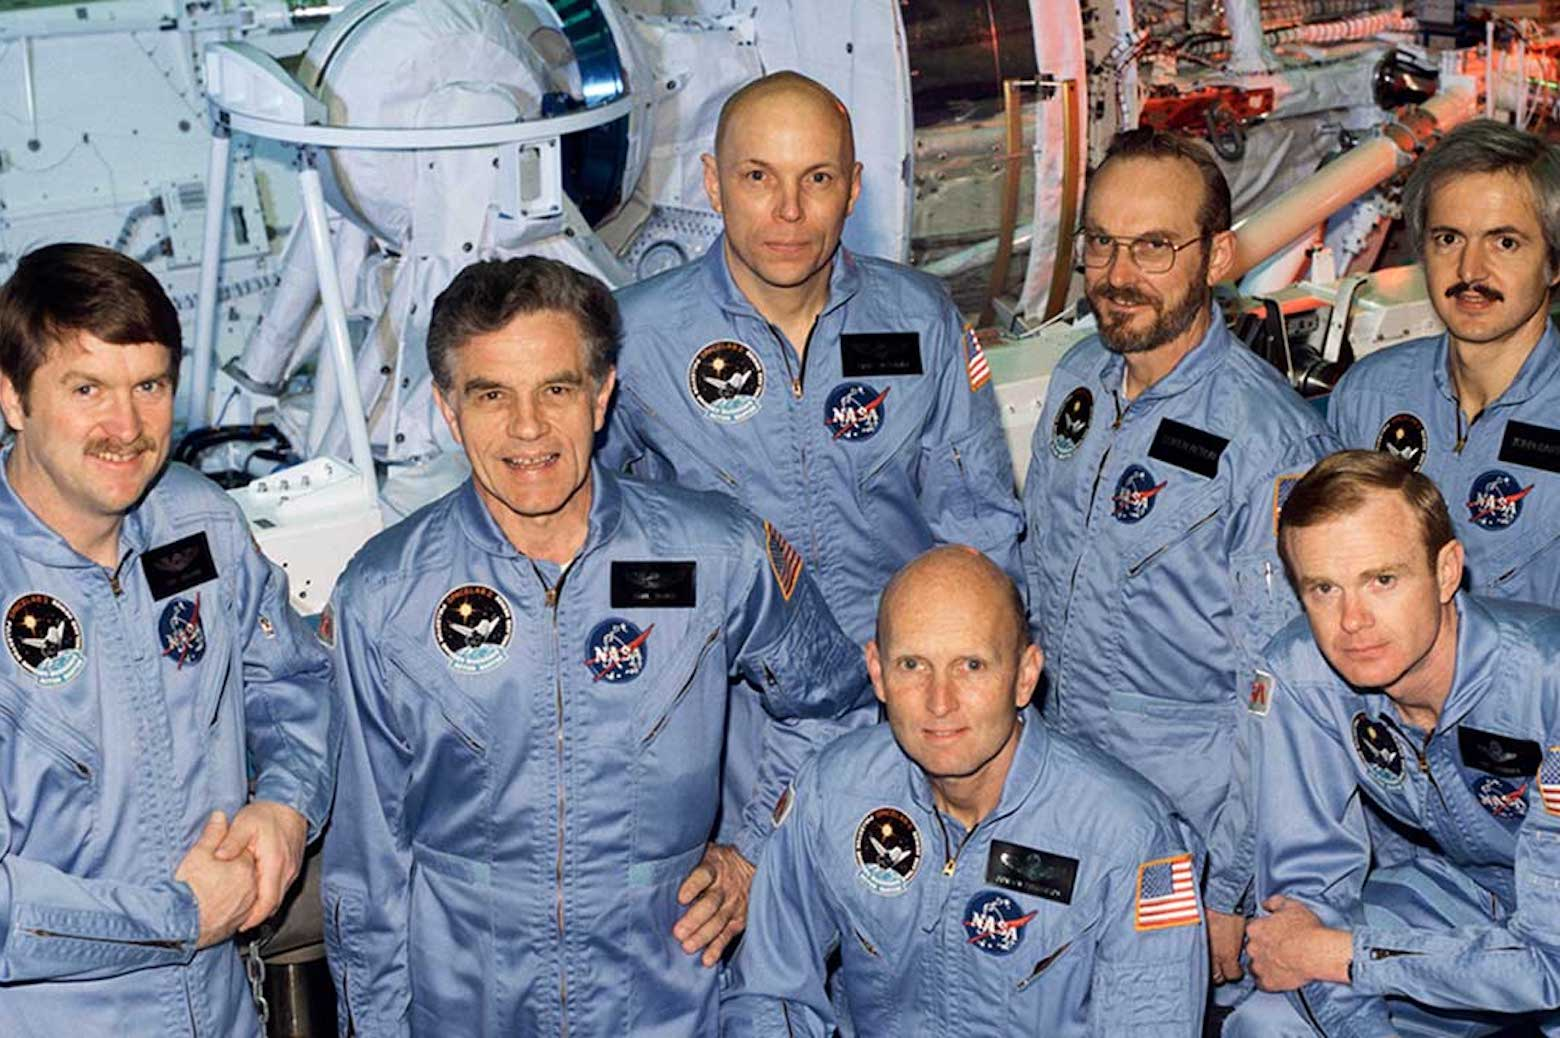 Group picture of the astronauts